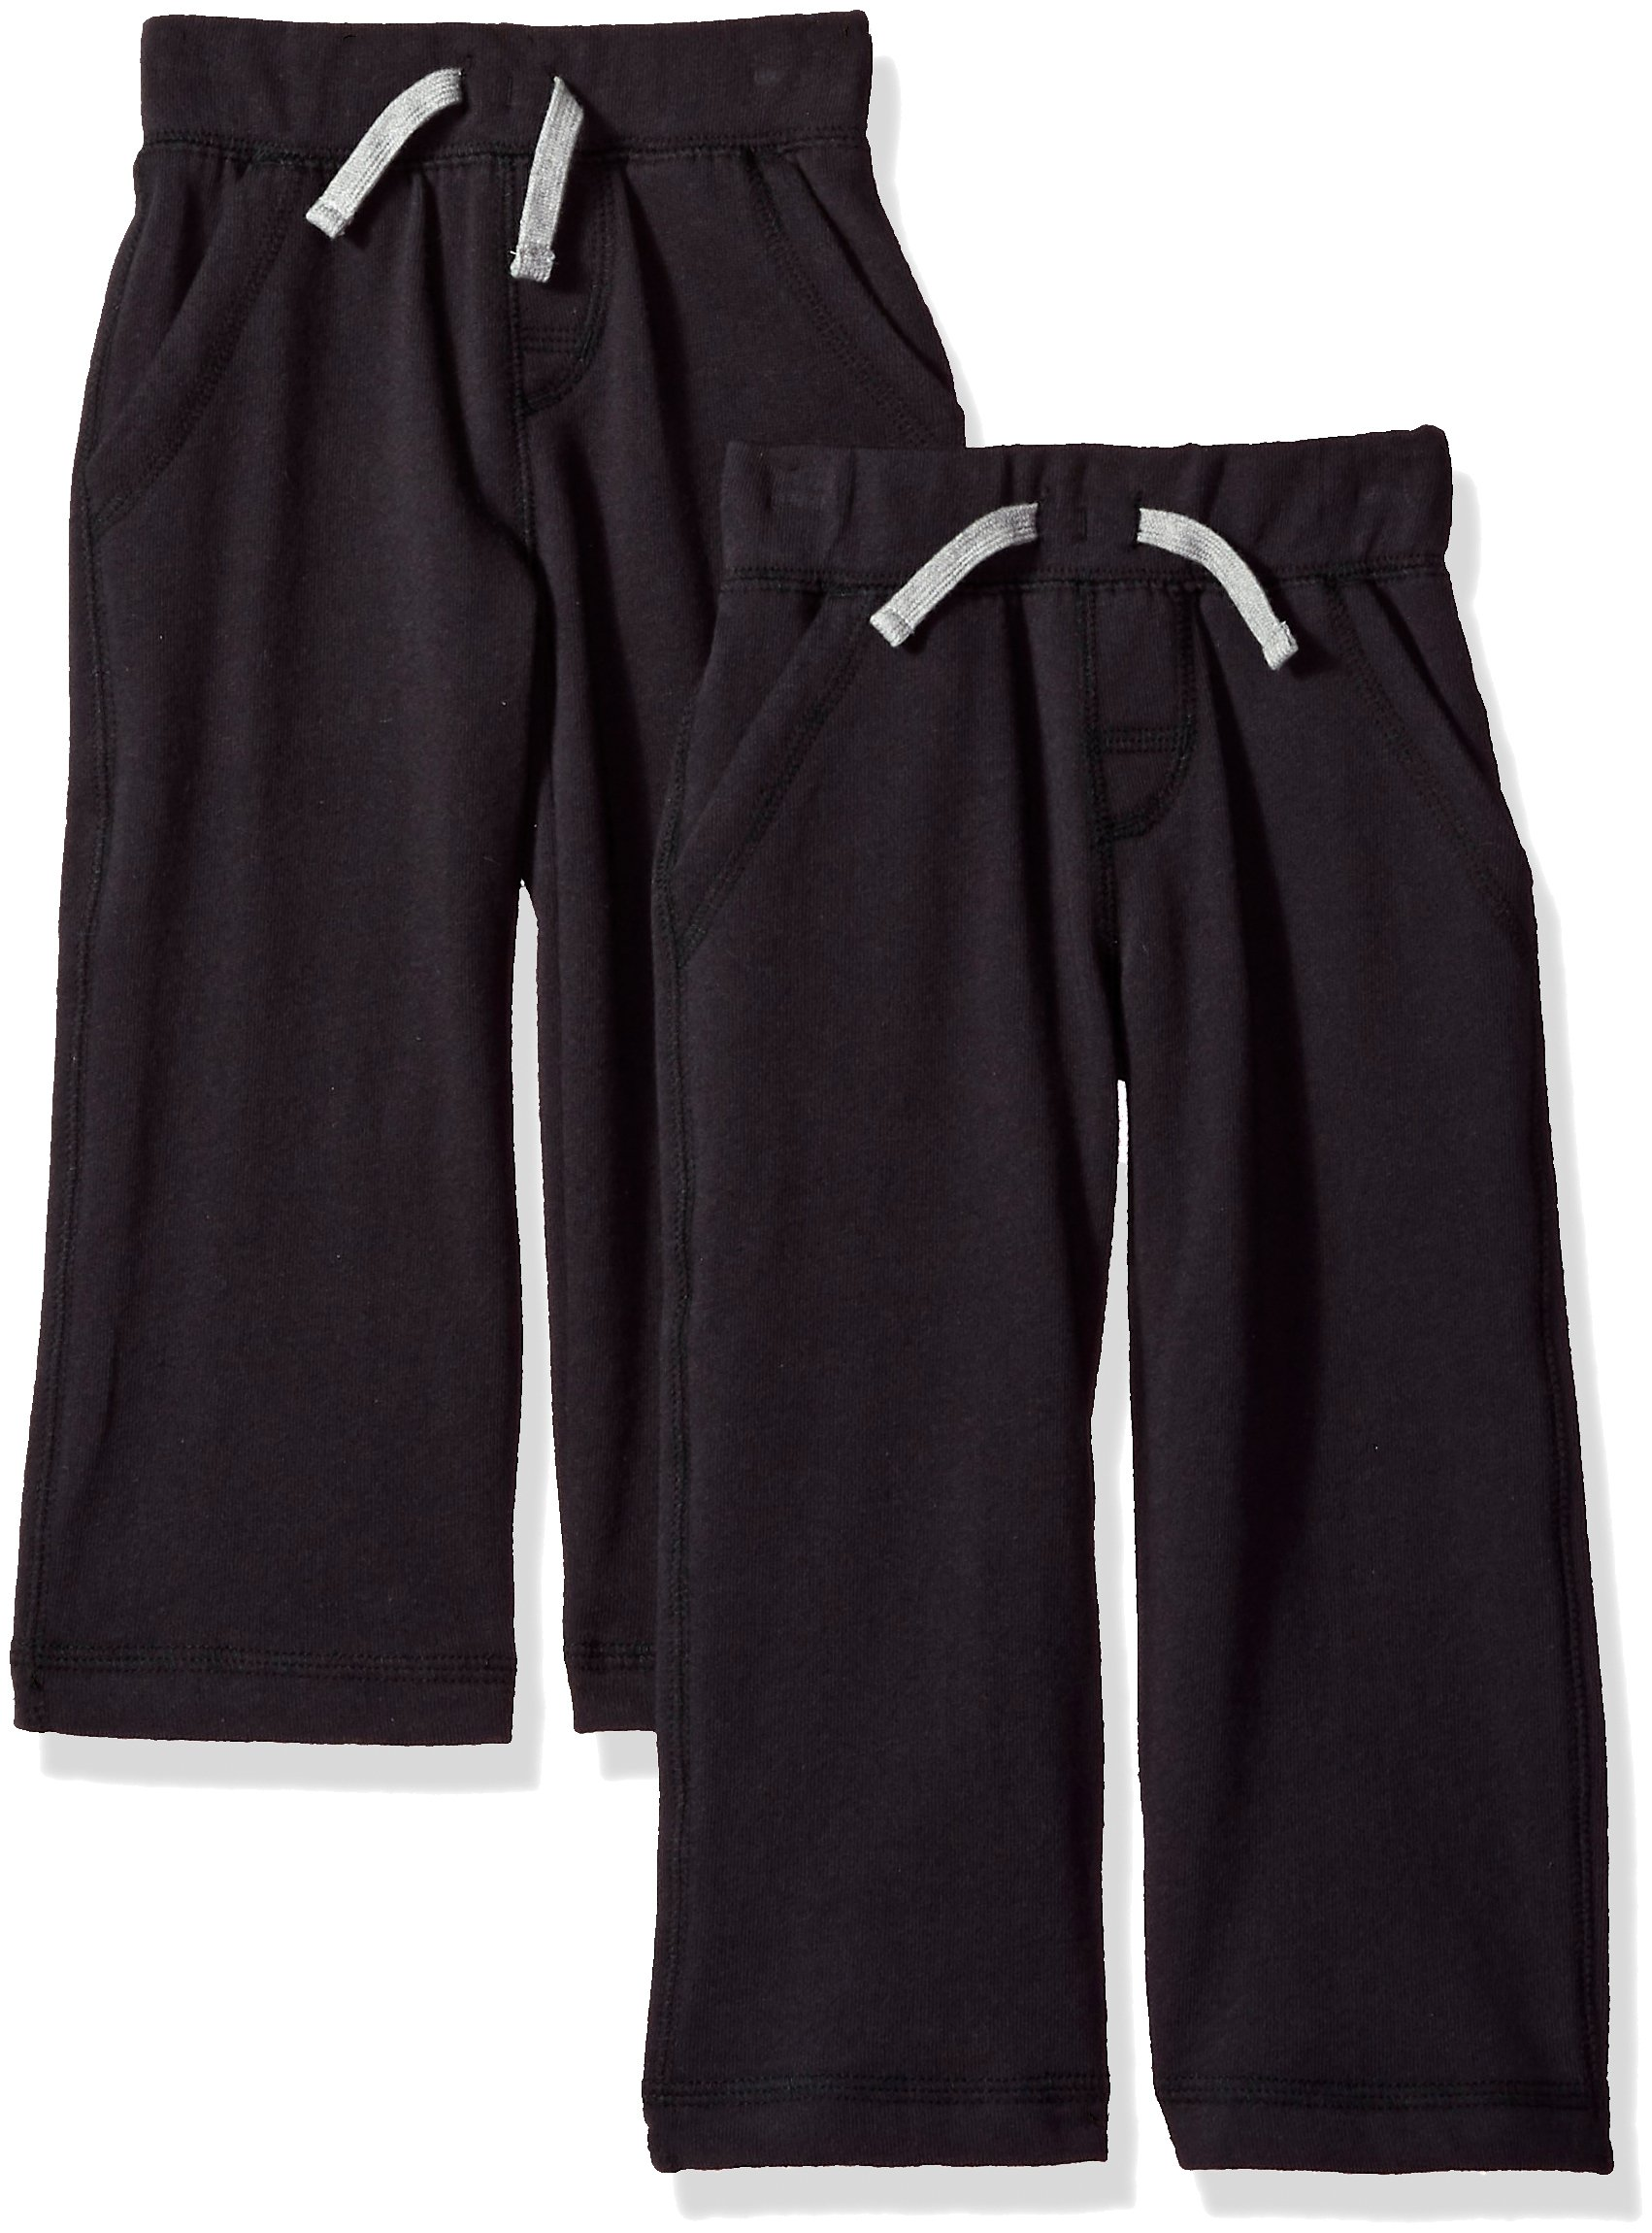 Gerber Graduates Toddler Boys' 2 Pack French Terry Pant, Black, 4T